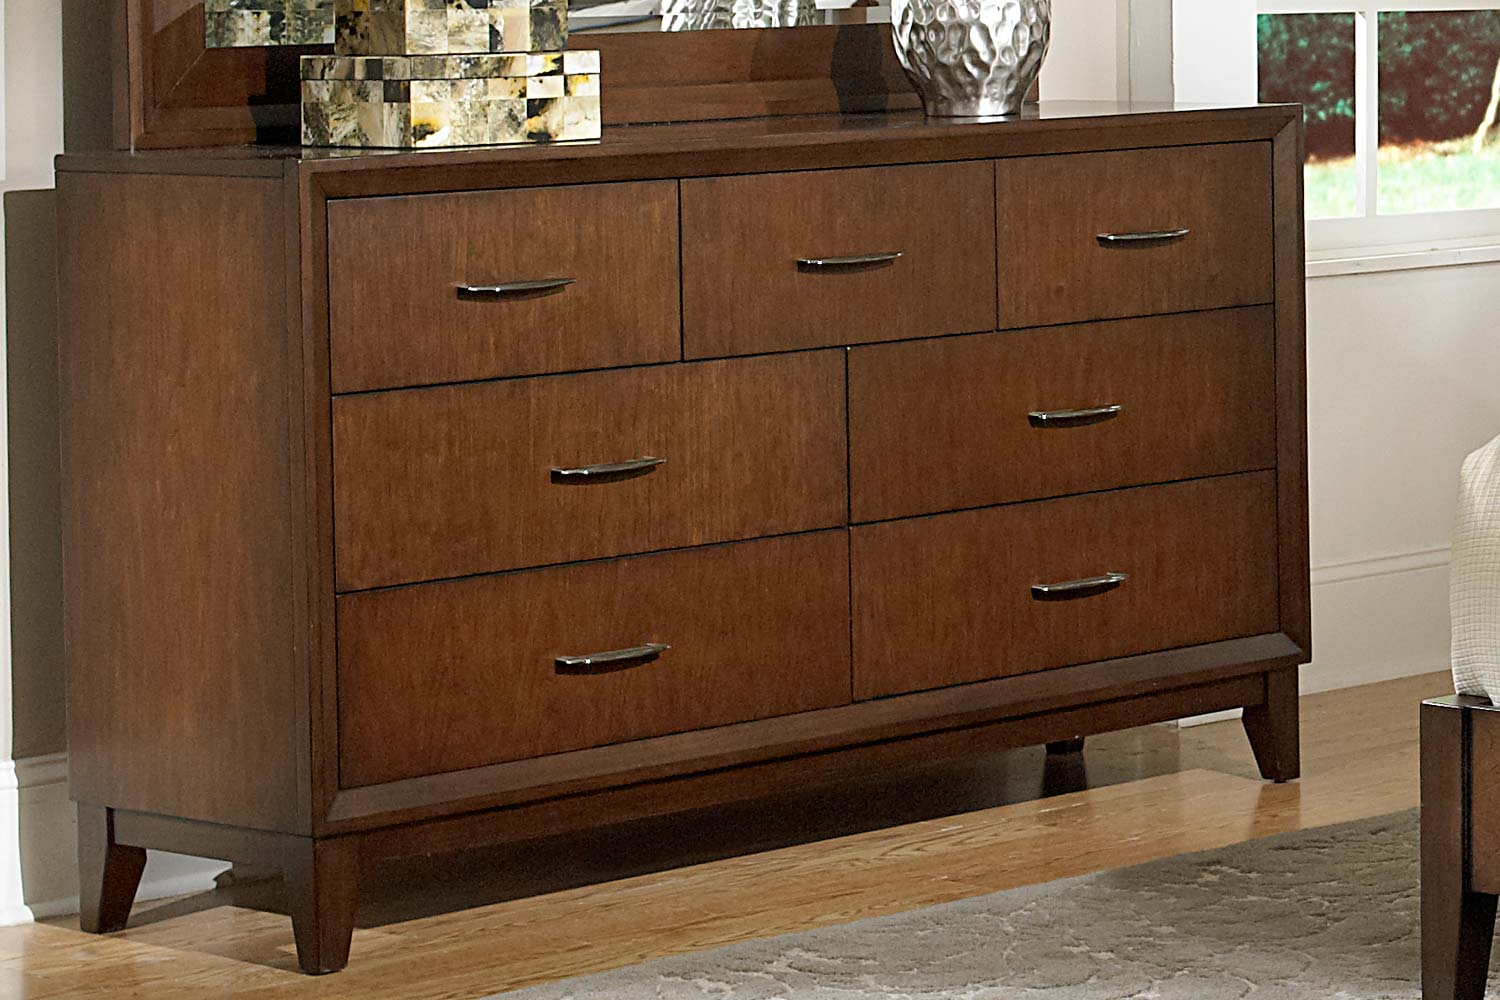 Homelegance Oliver Dresser - Warm Brown Cherry